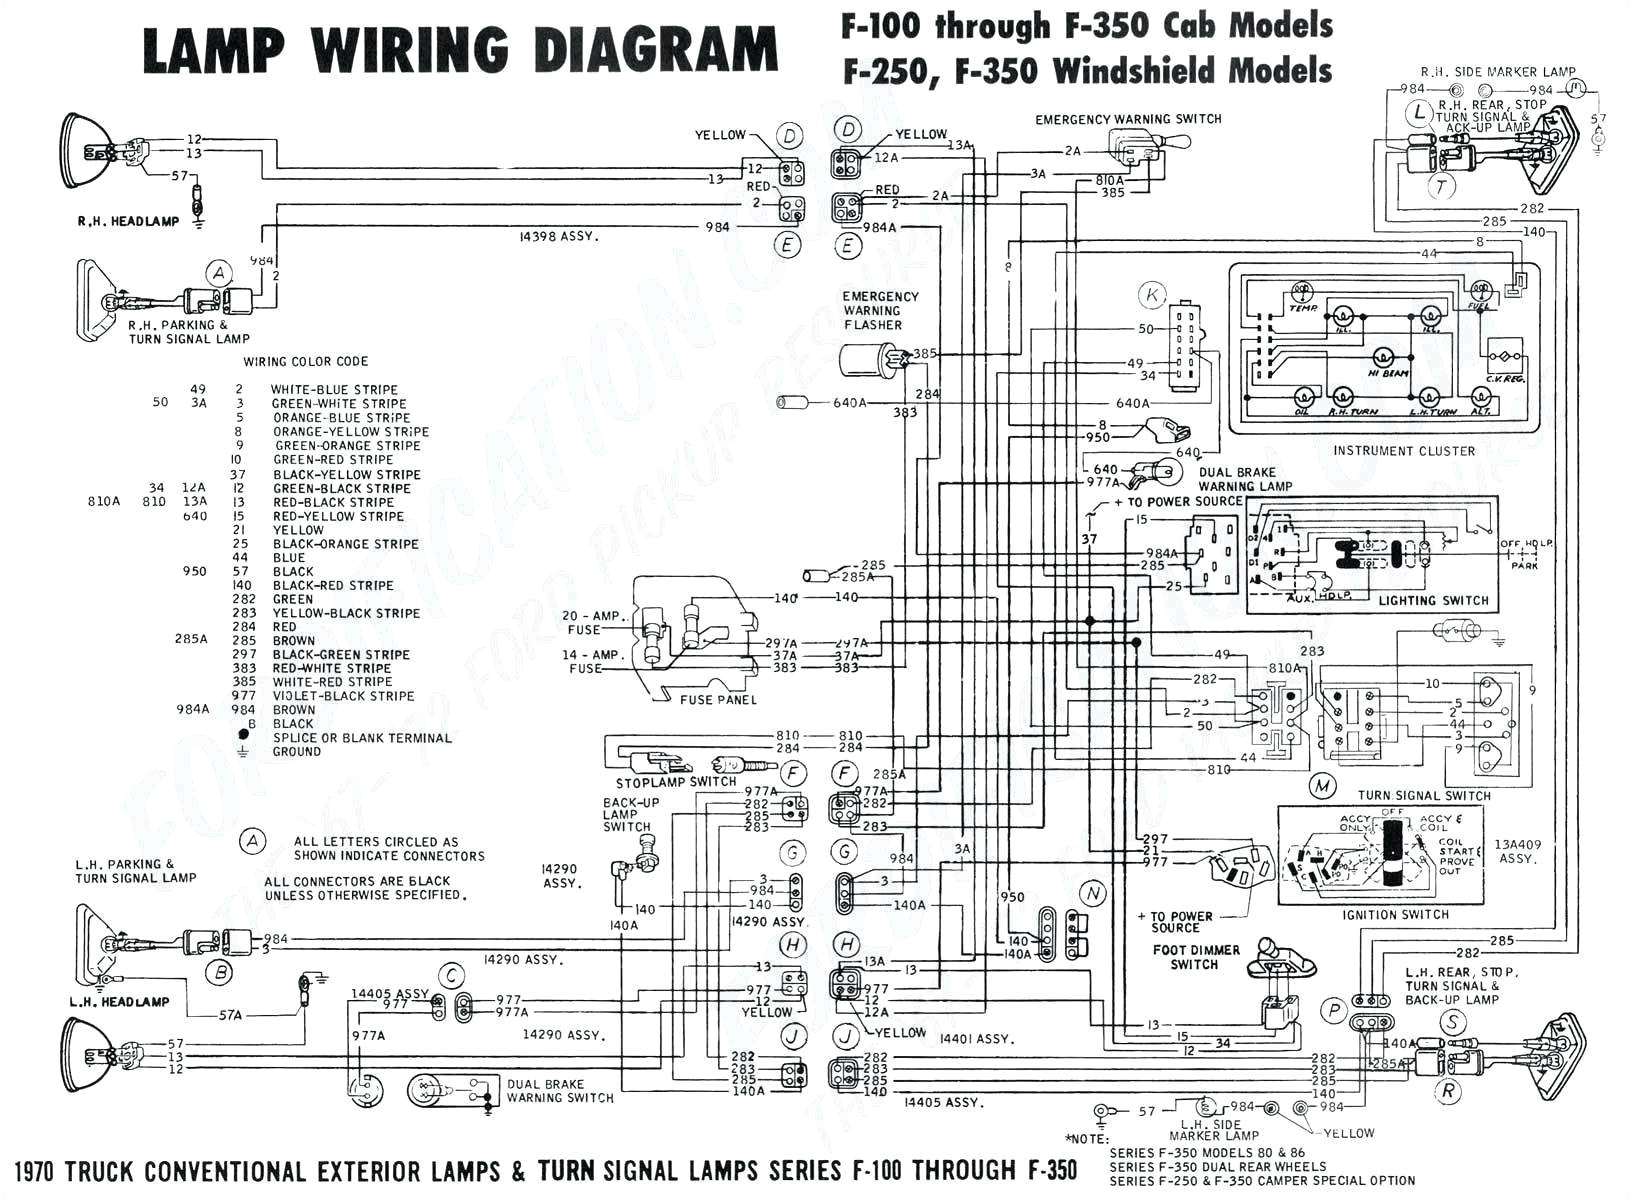 harley wiring harness diagram furthermore automotive wiring diagram besides 1957 chevy wiring harness diagram furthermore chevy